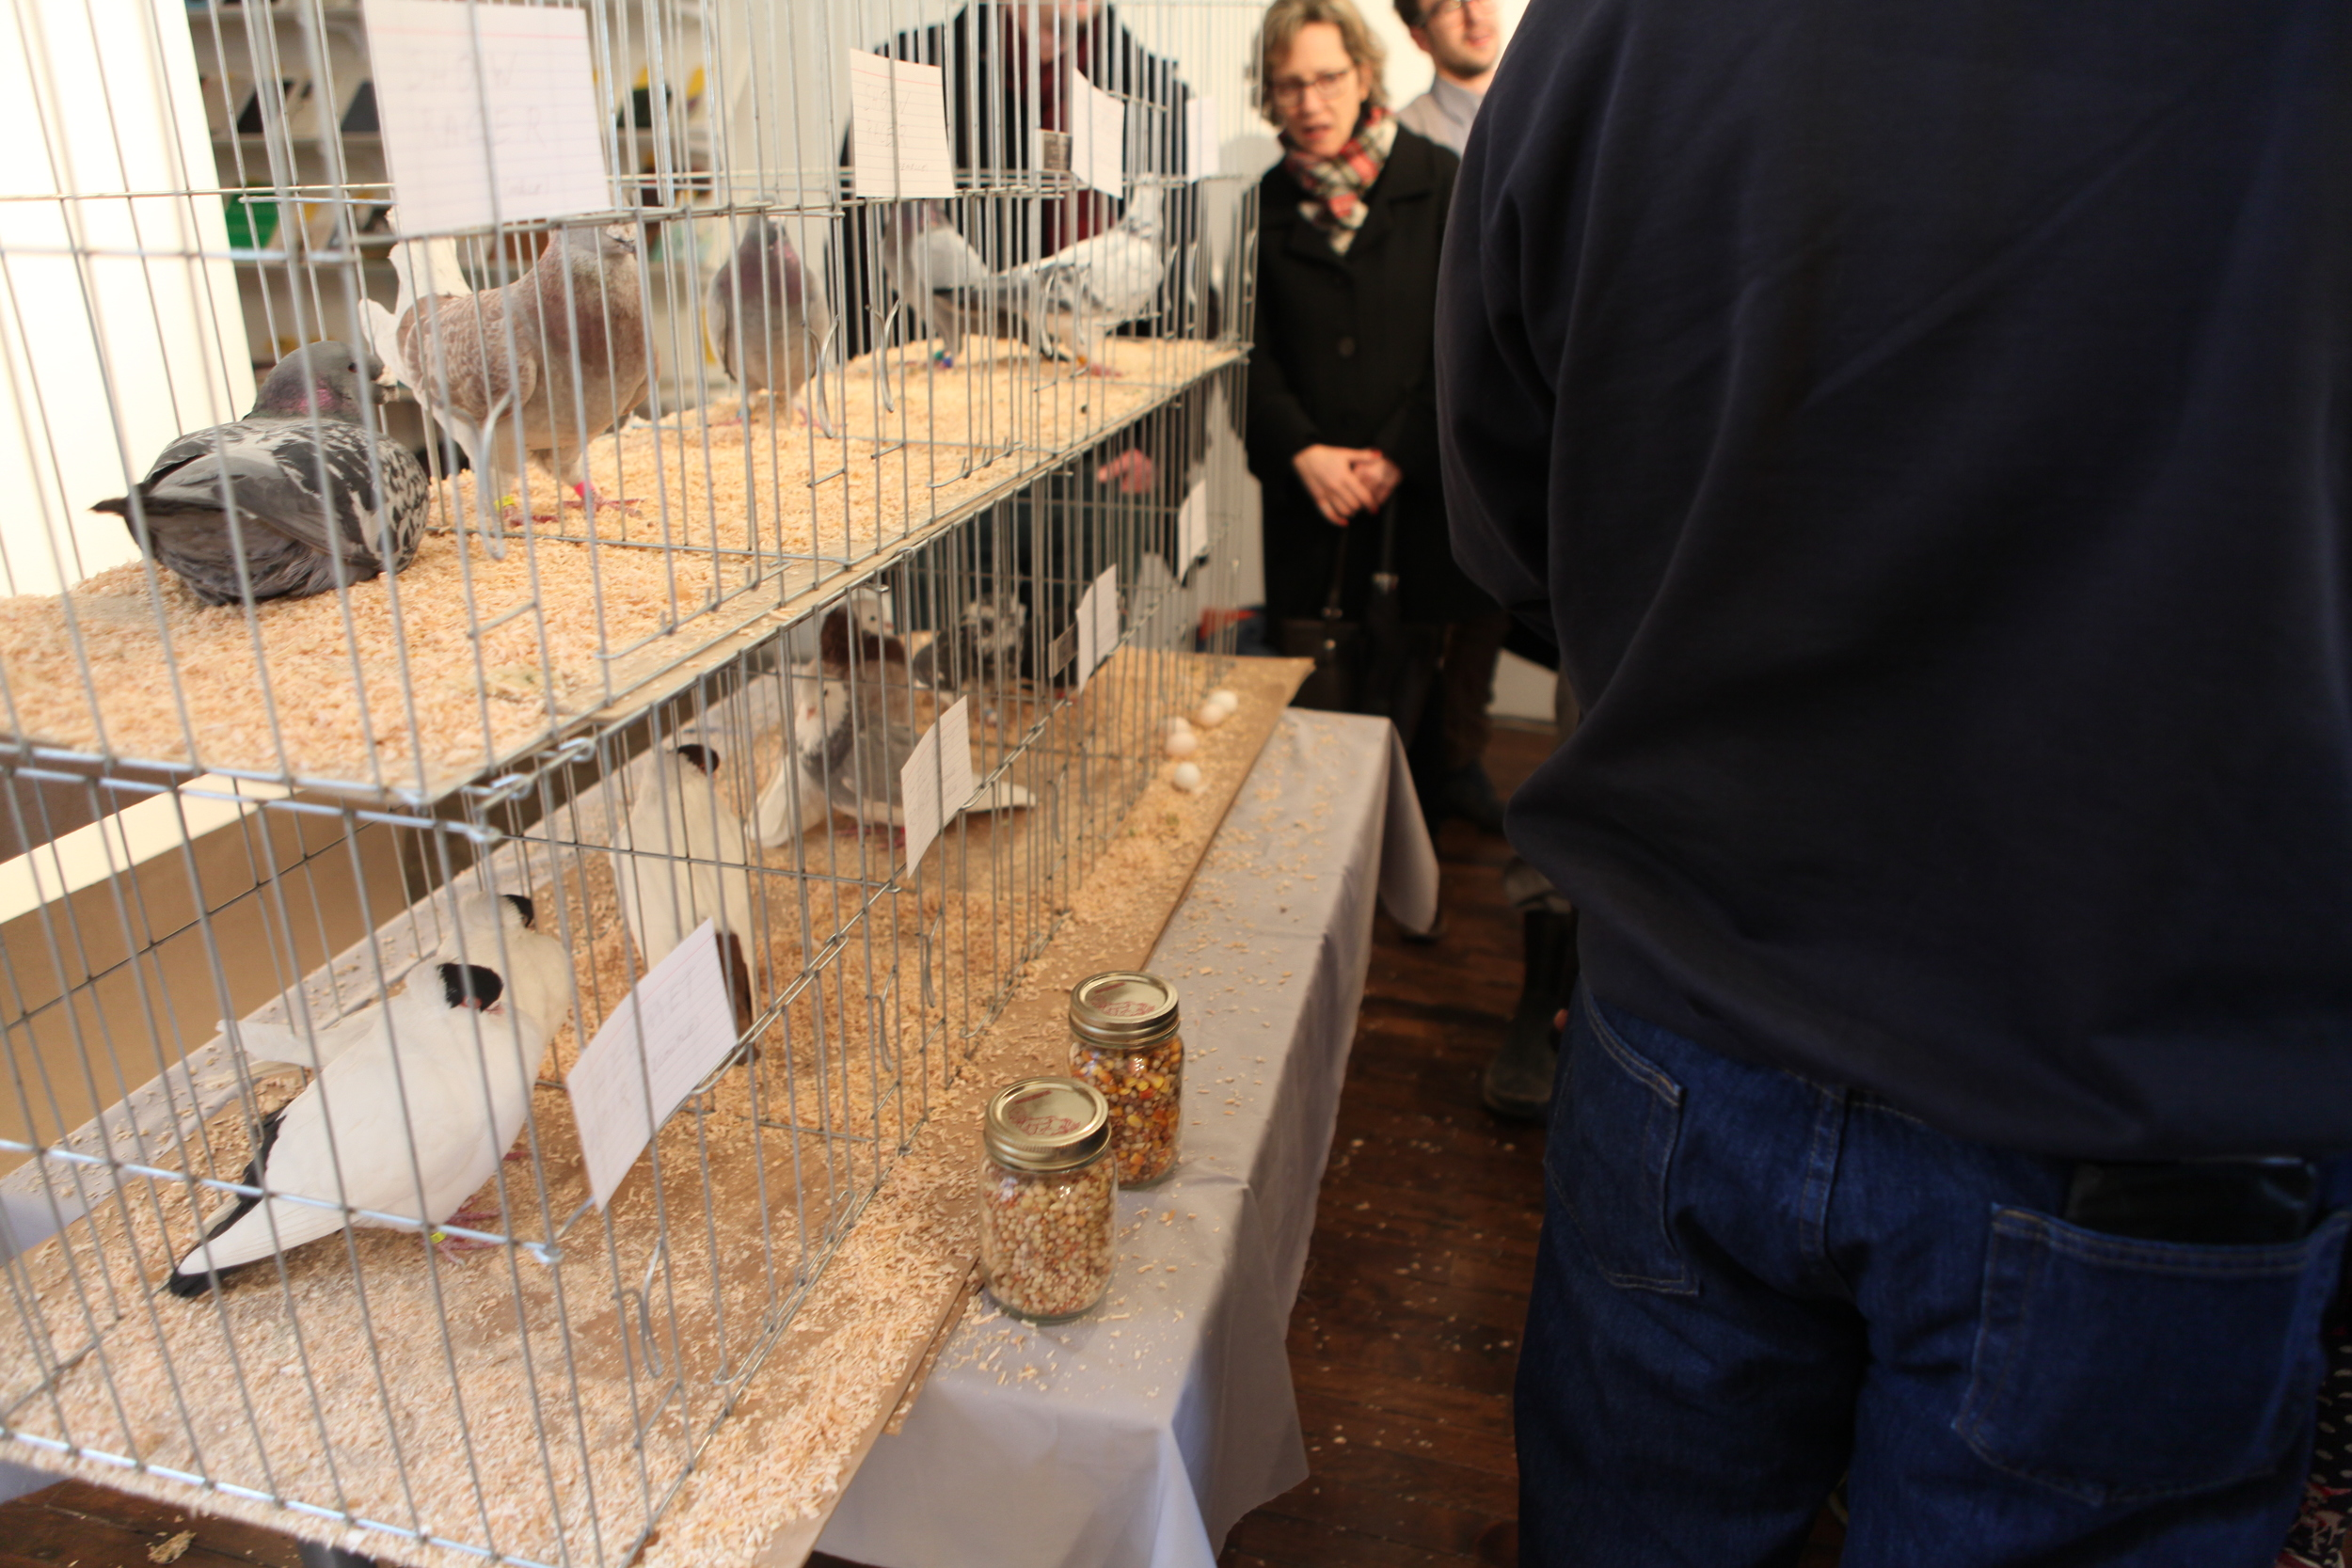 Domesticated pigeons were brought into the gallery.